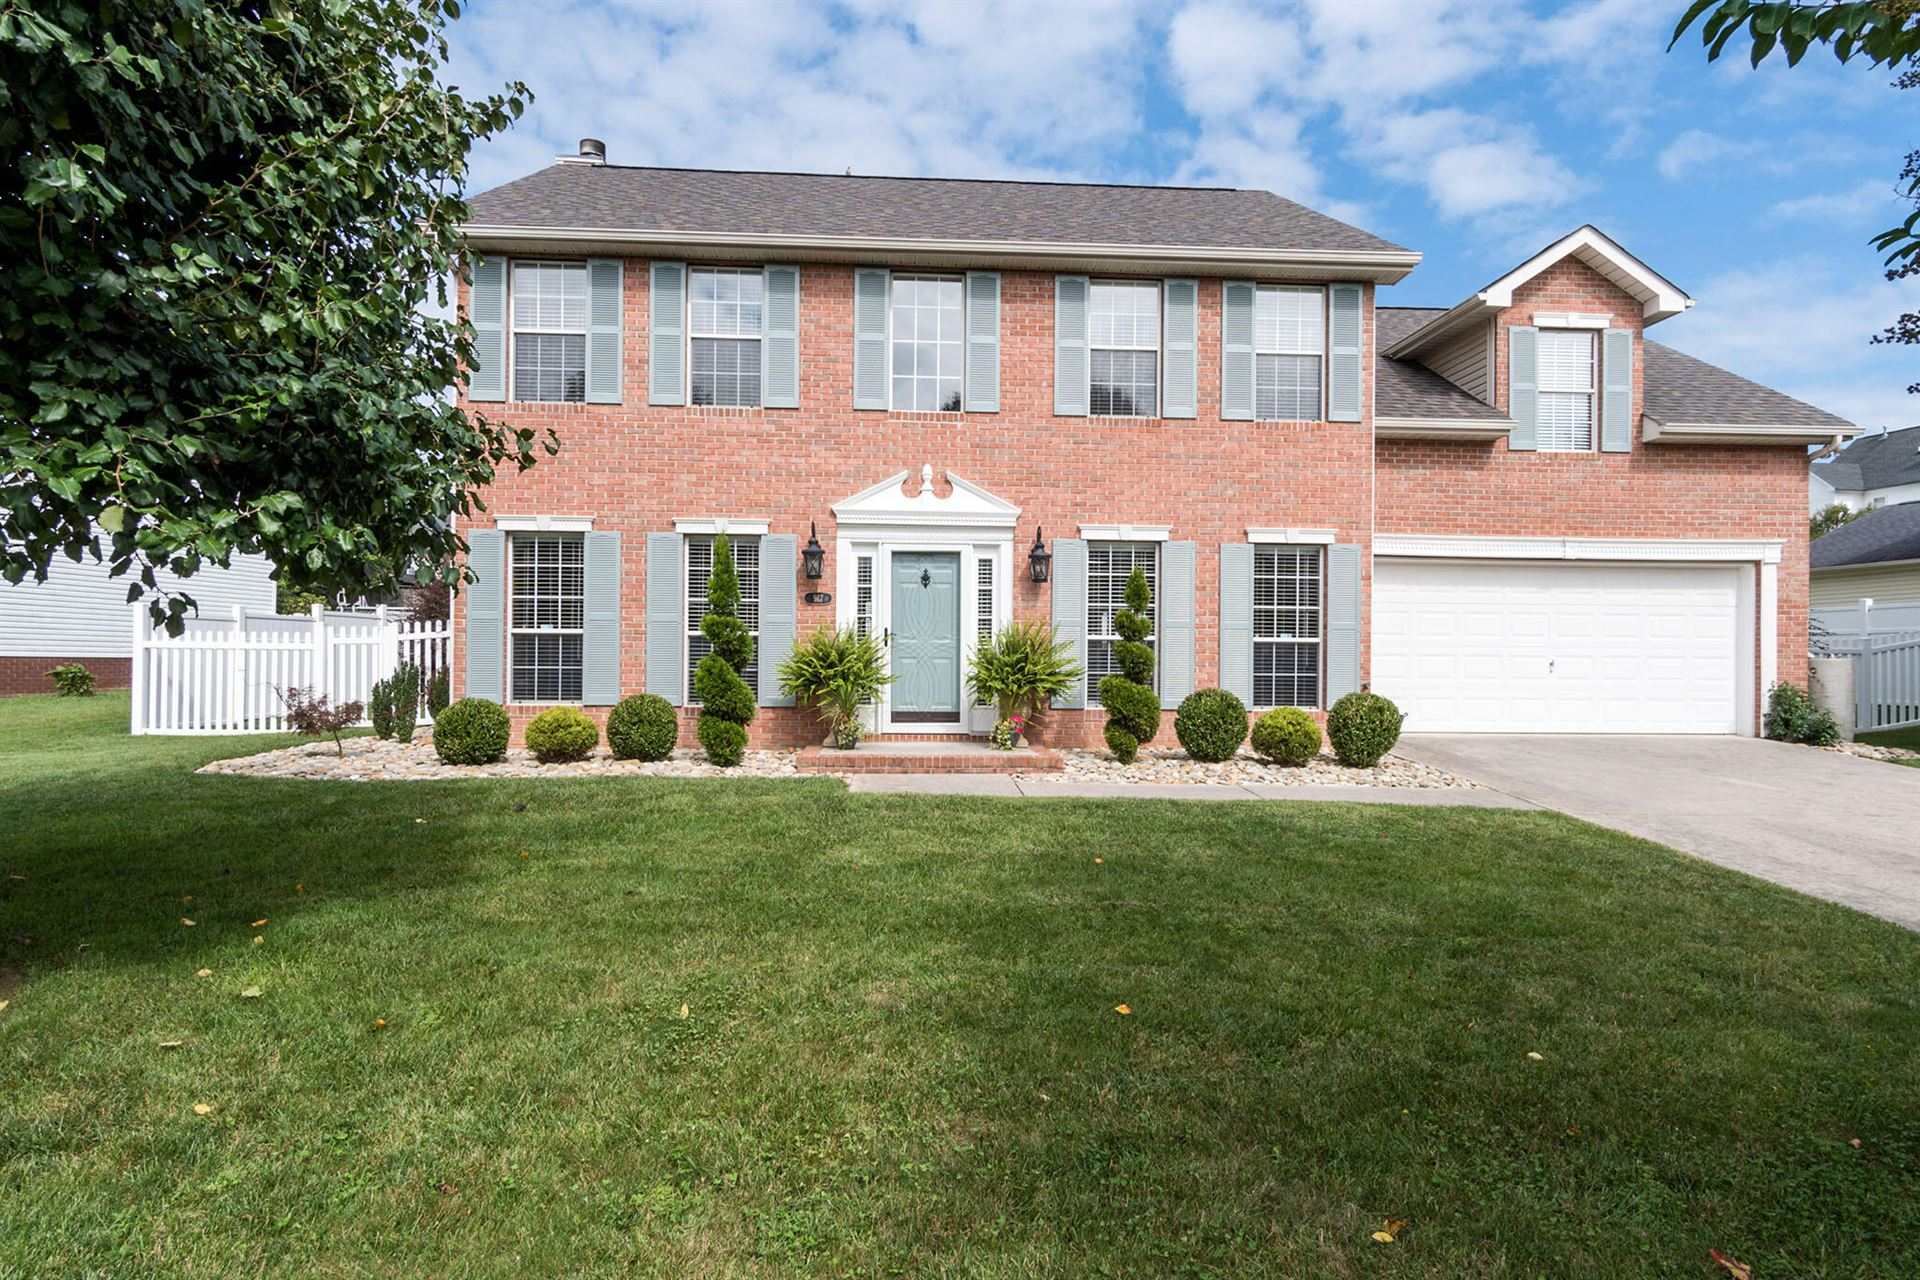 Photo of 917 Paxton Drive Drive, Knoxville, TN 37918 (MLS # 1167827)